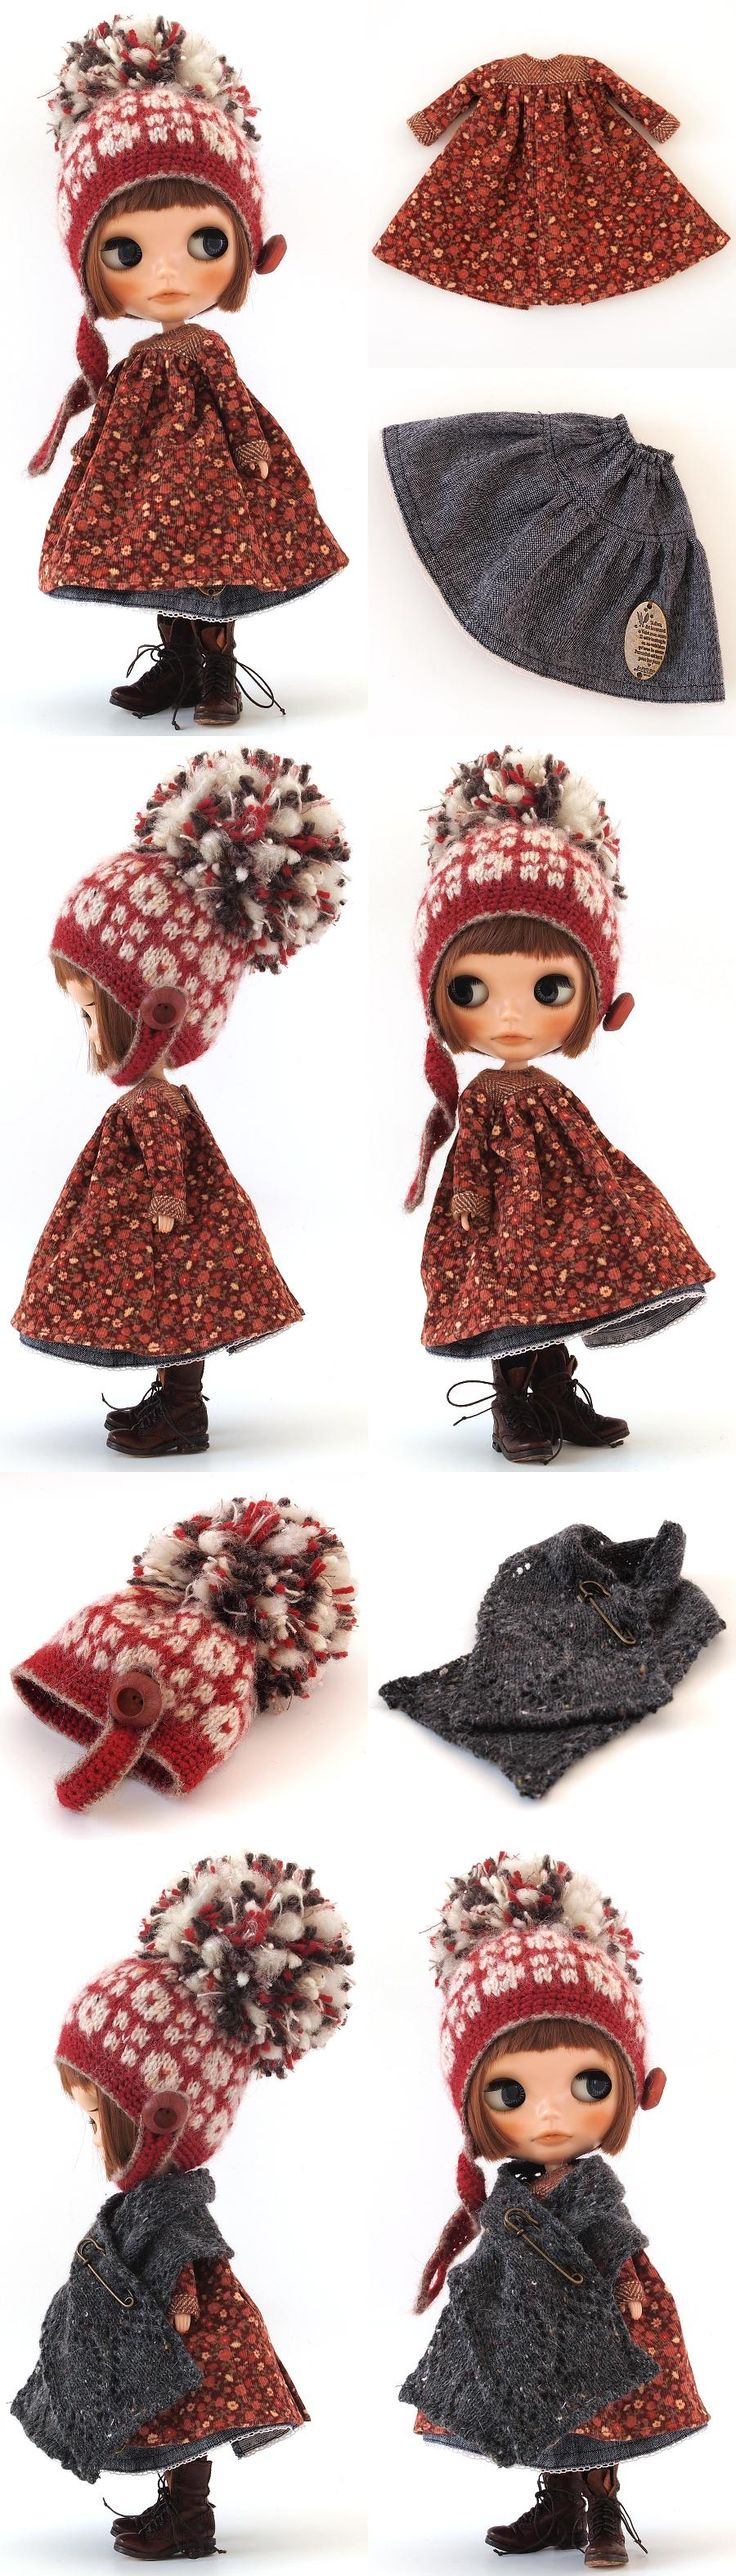 ** Blythe outfit ** Lucalily 368**の画像:mahounote. もっと見る